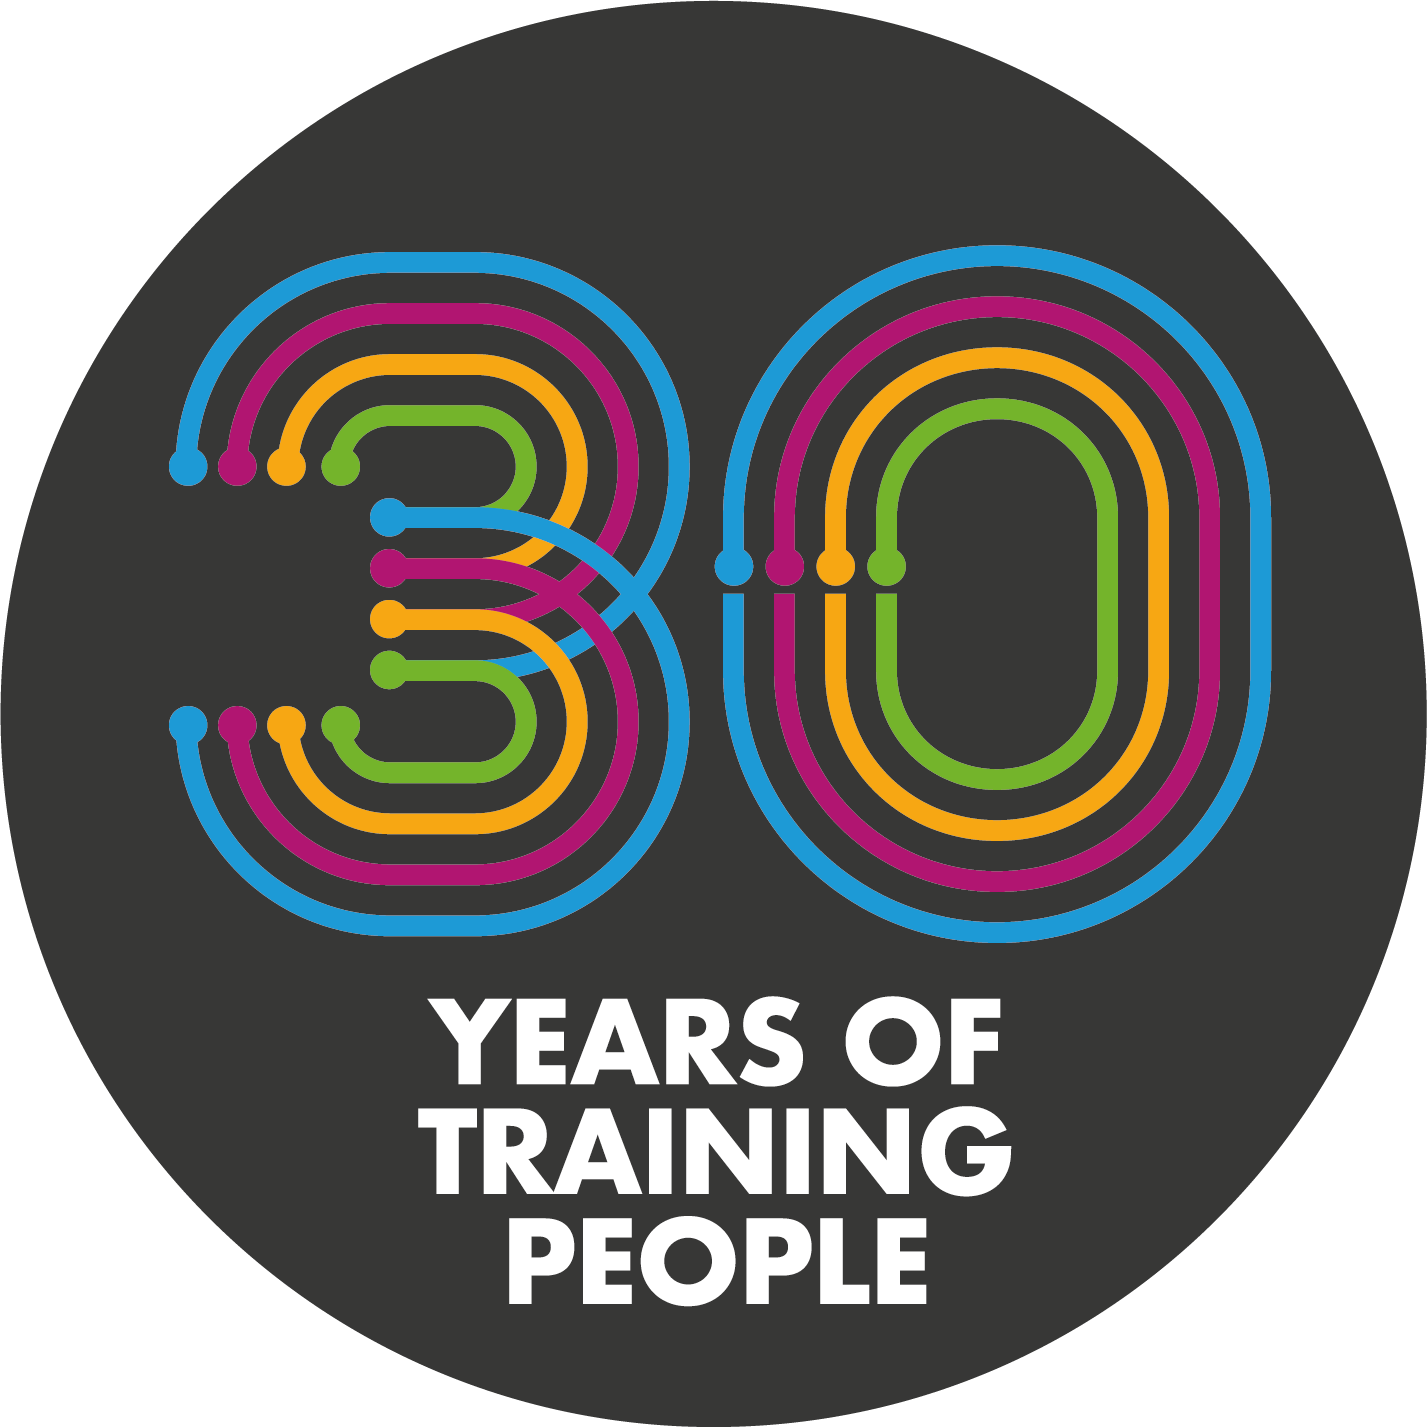 30 years of training people